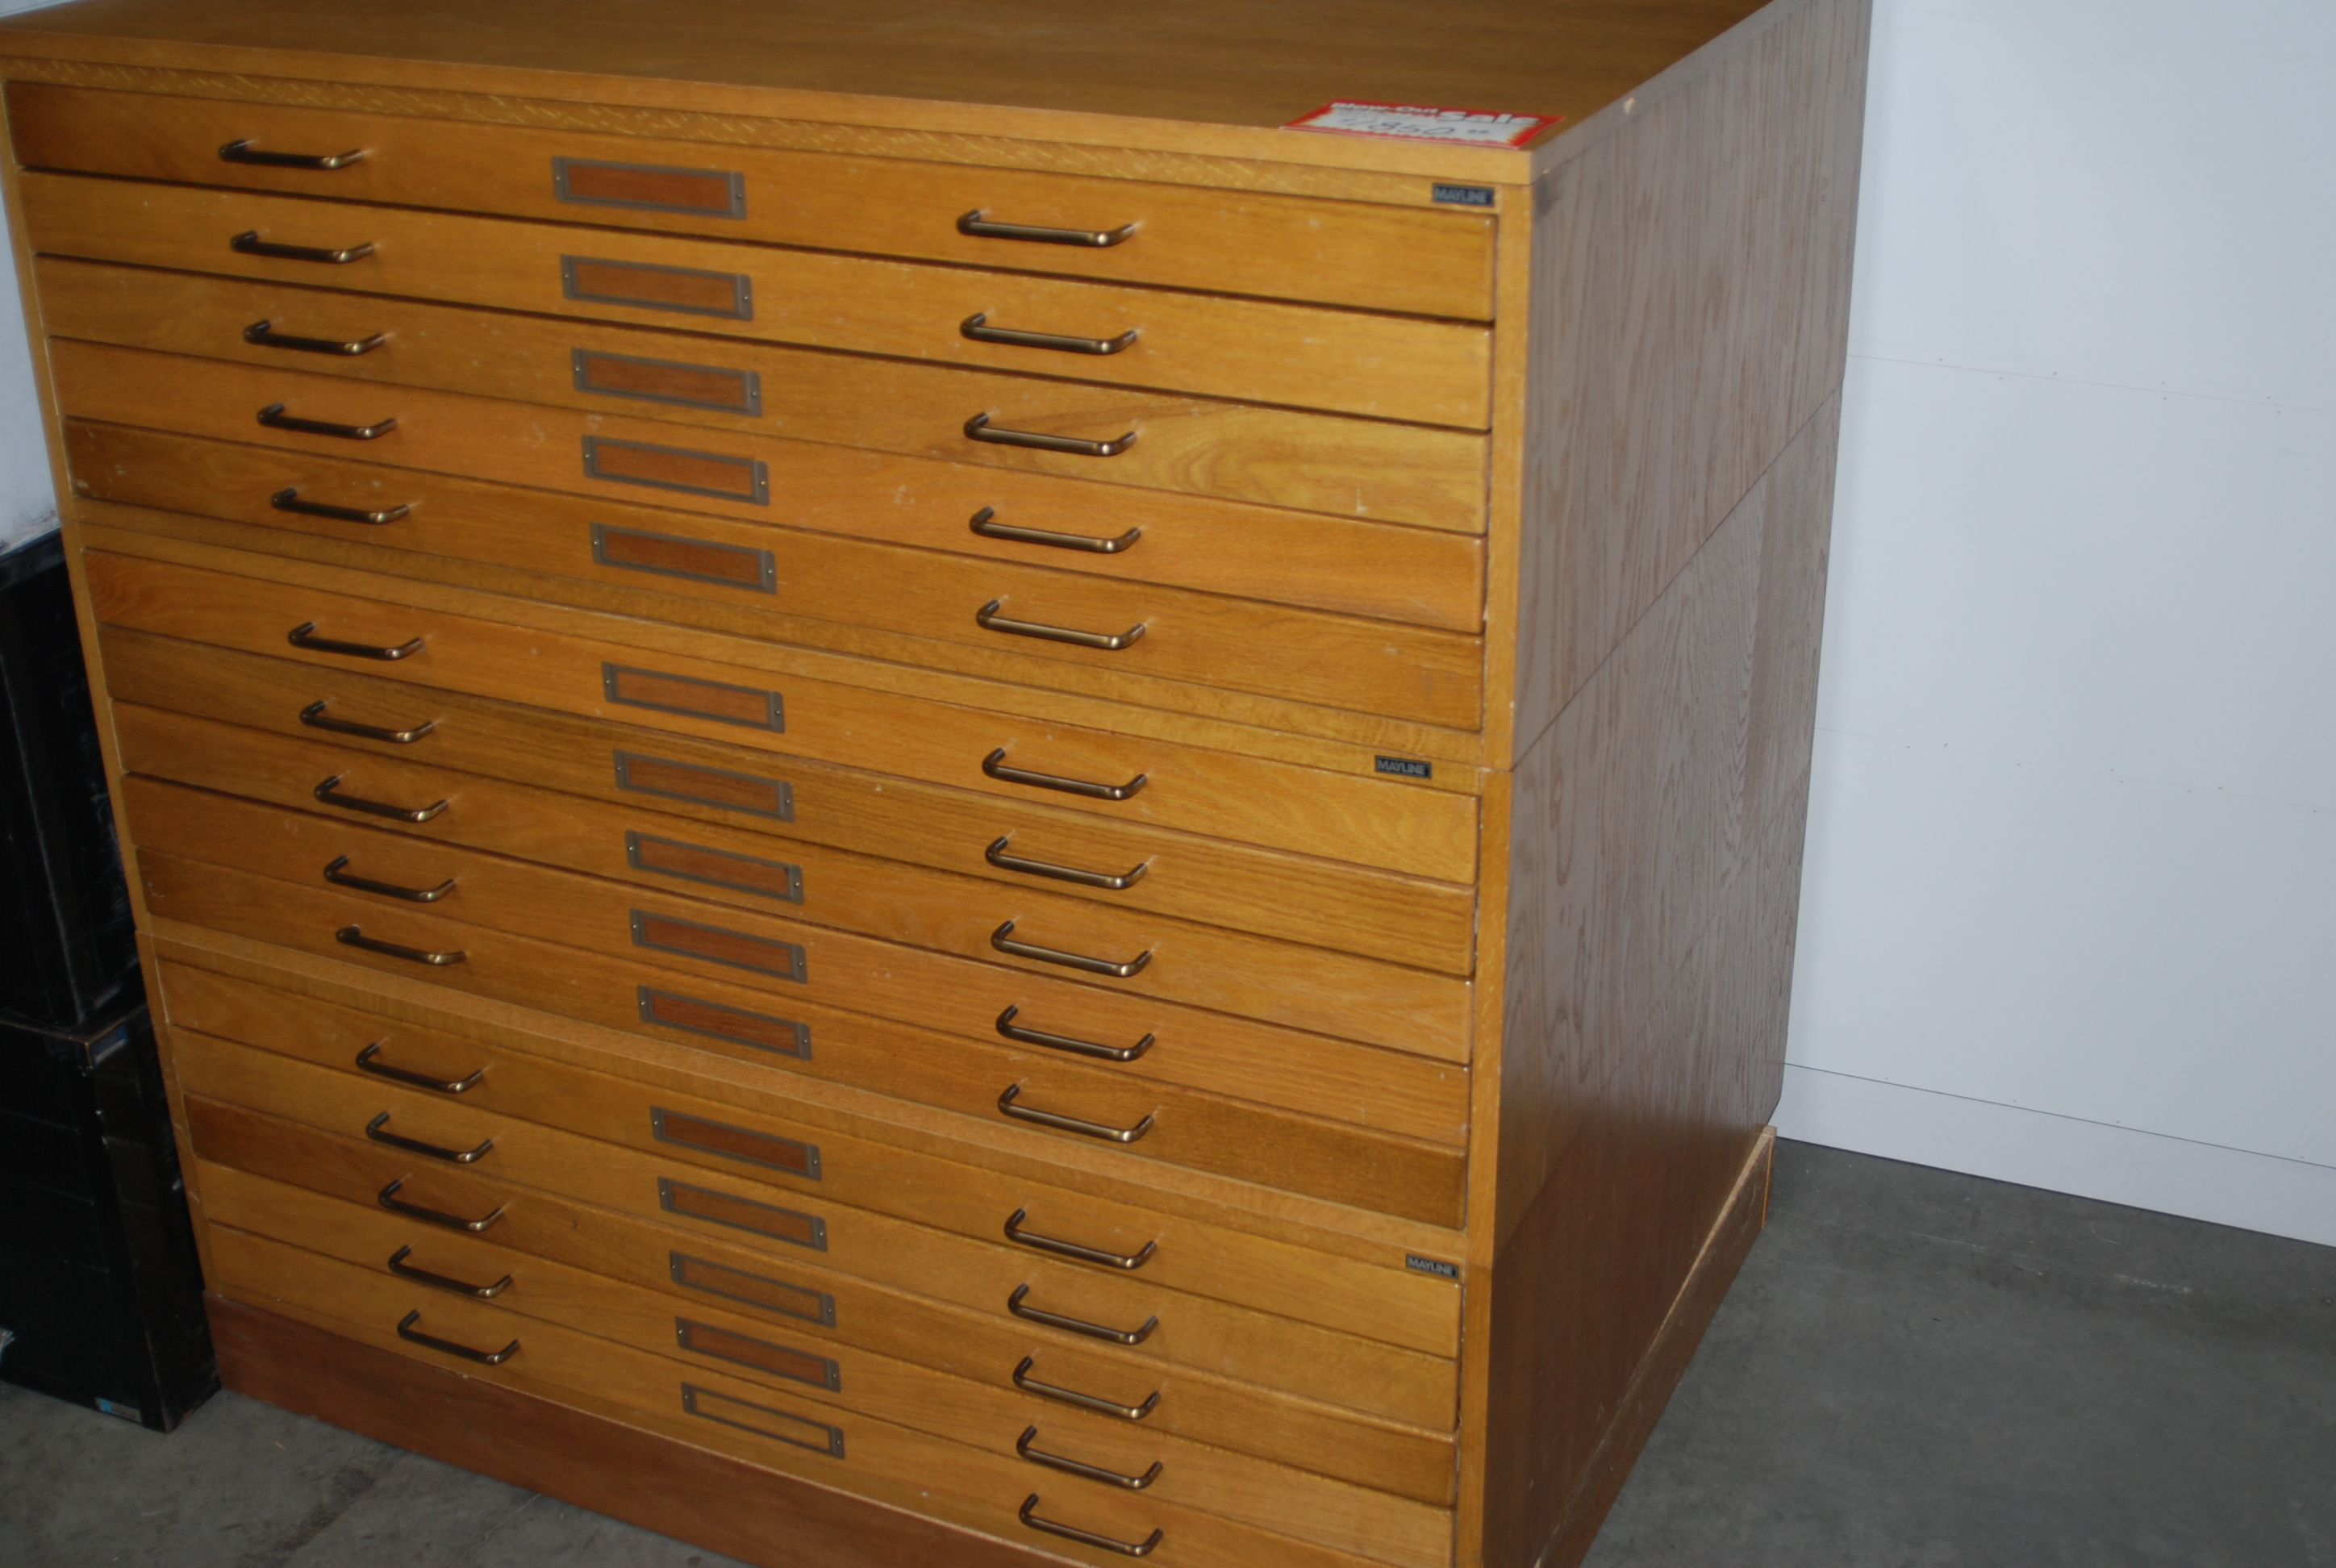 Used flat files roll files plan racks hoppers drafting furniture used wood flat files used mayline 5 drawer sold wood flat files includes 3 5 drawer files 1 cap and 1 base holds up to 30 x 42 drawings malvernweather Images